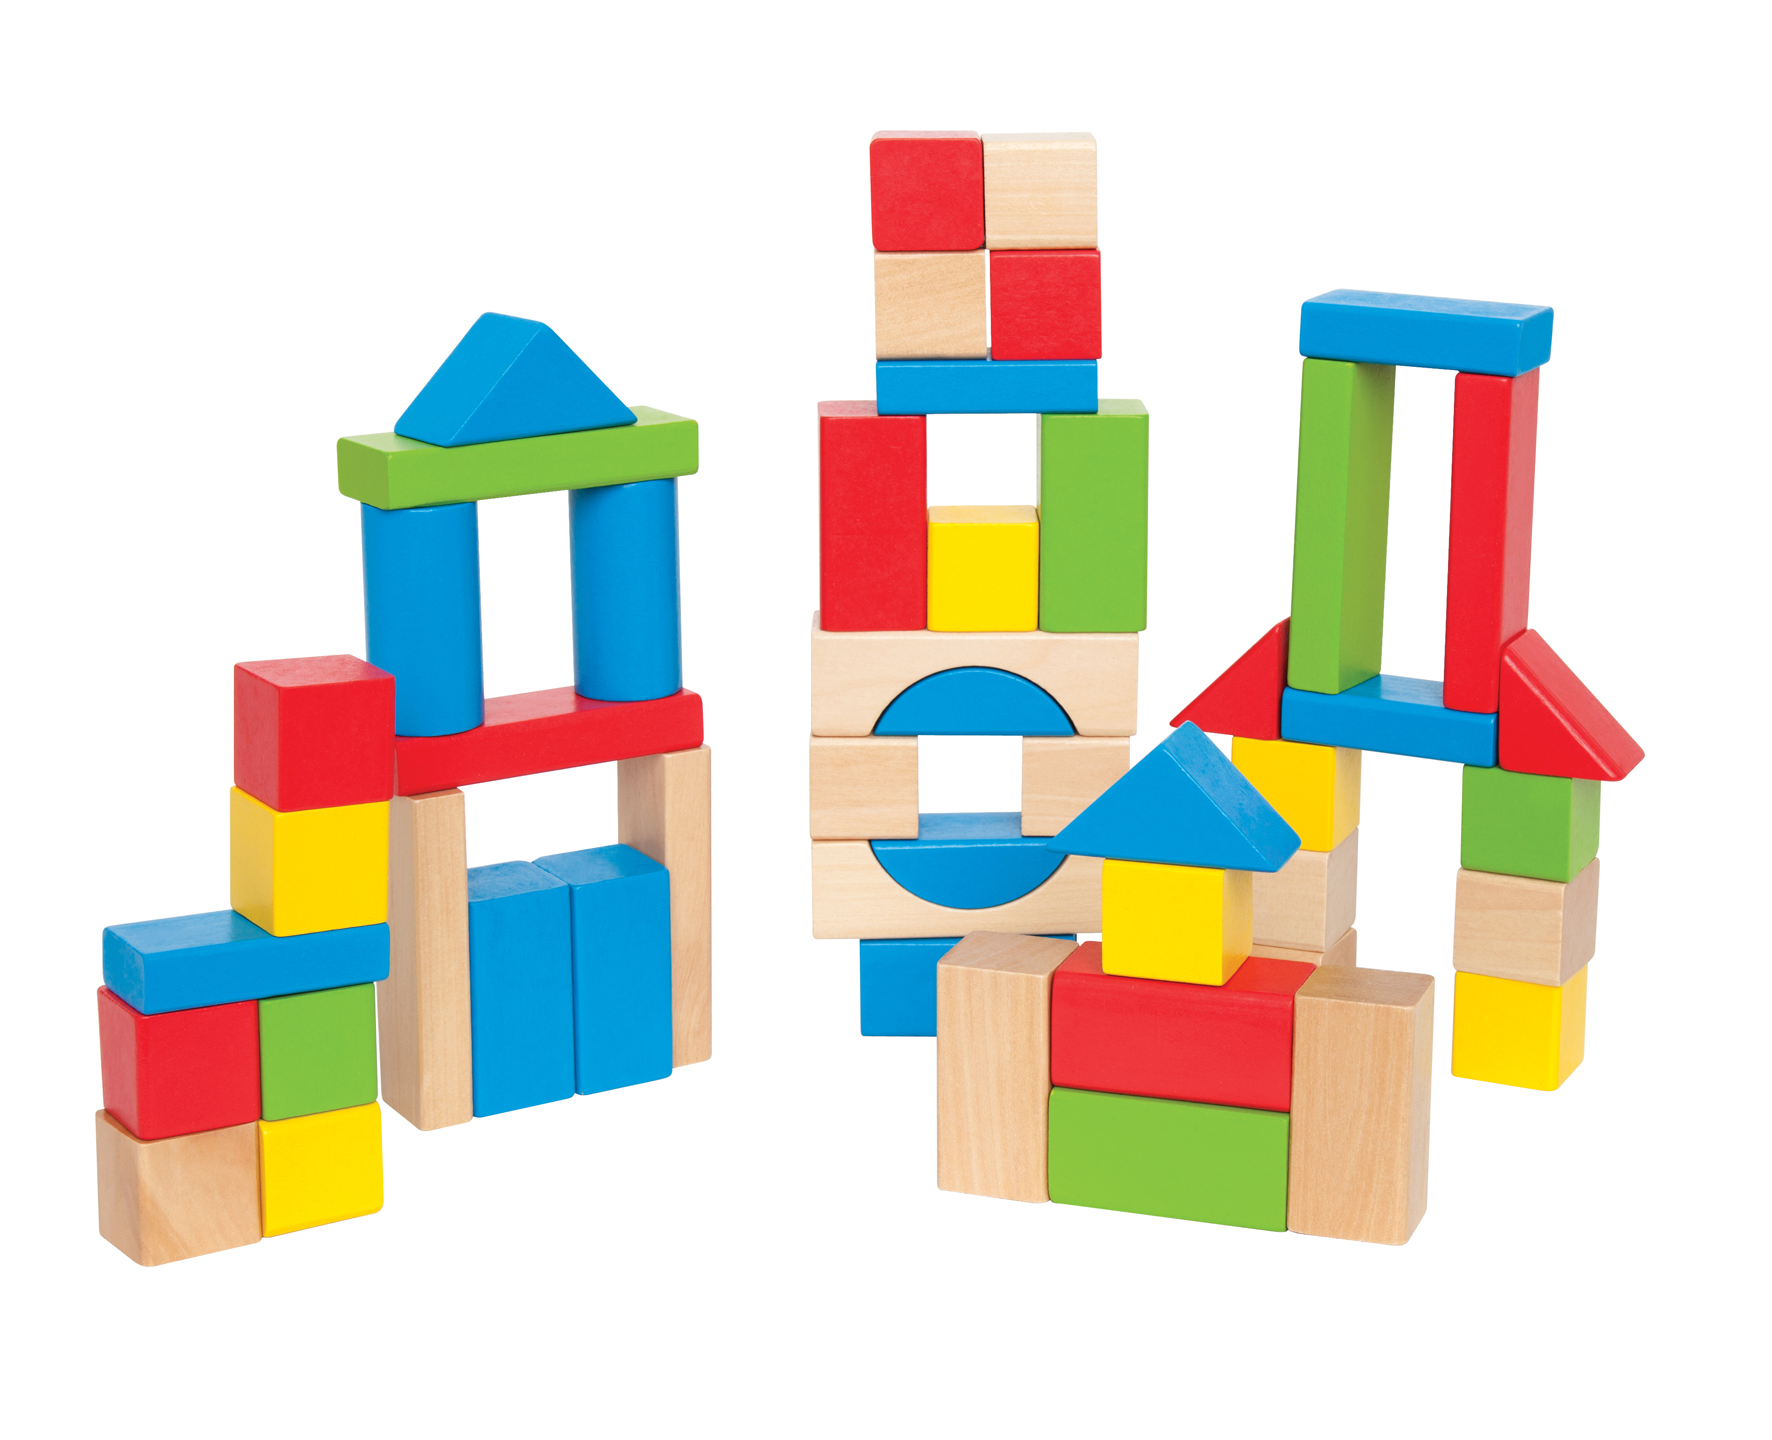 Kids building blocks clipart vector freeuse library Wooden Blocks Clipart - Clipart Kid vector freeuse library